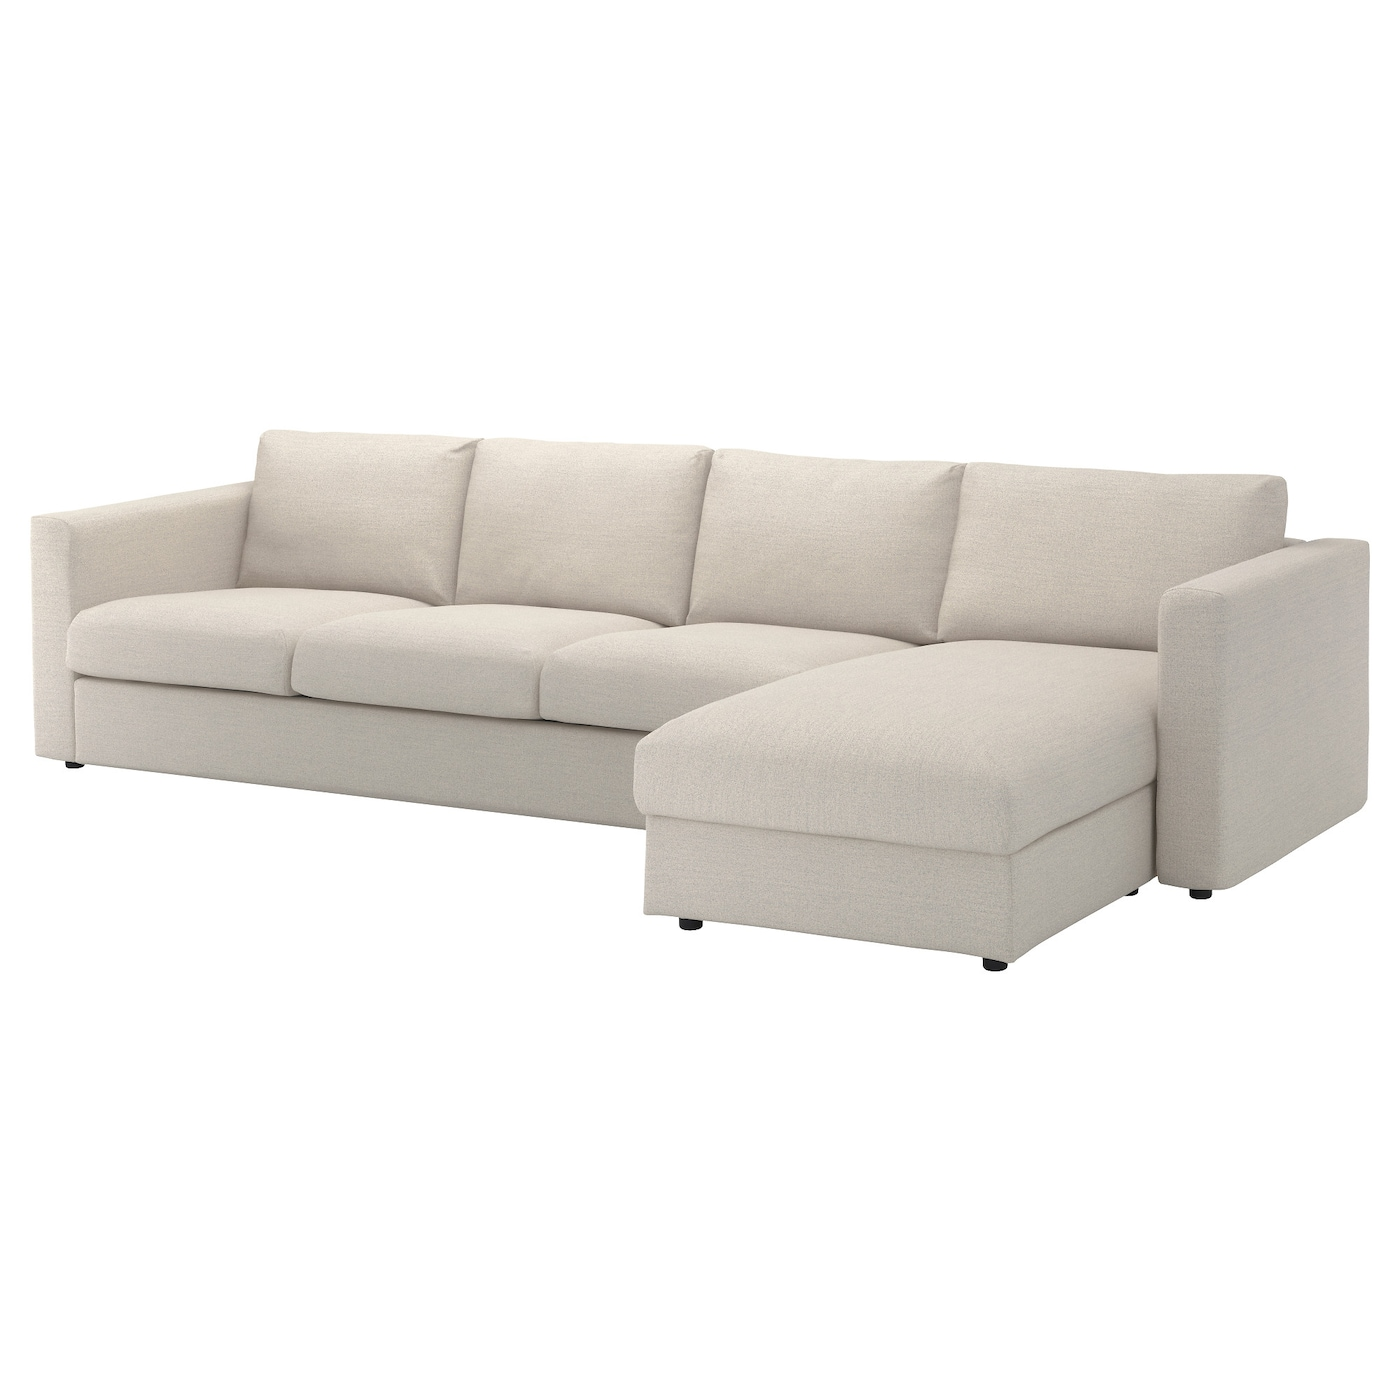 VIMLE Sectional, 4-seat, with chaise, Gunnared beige